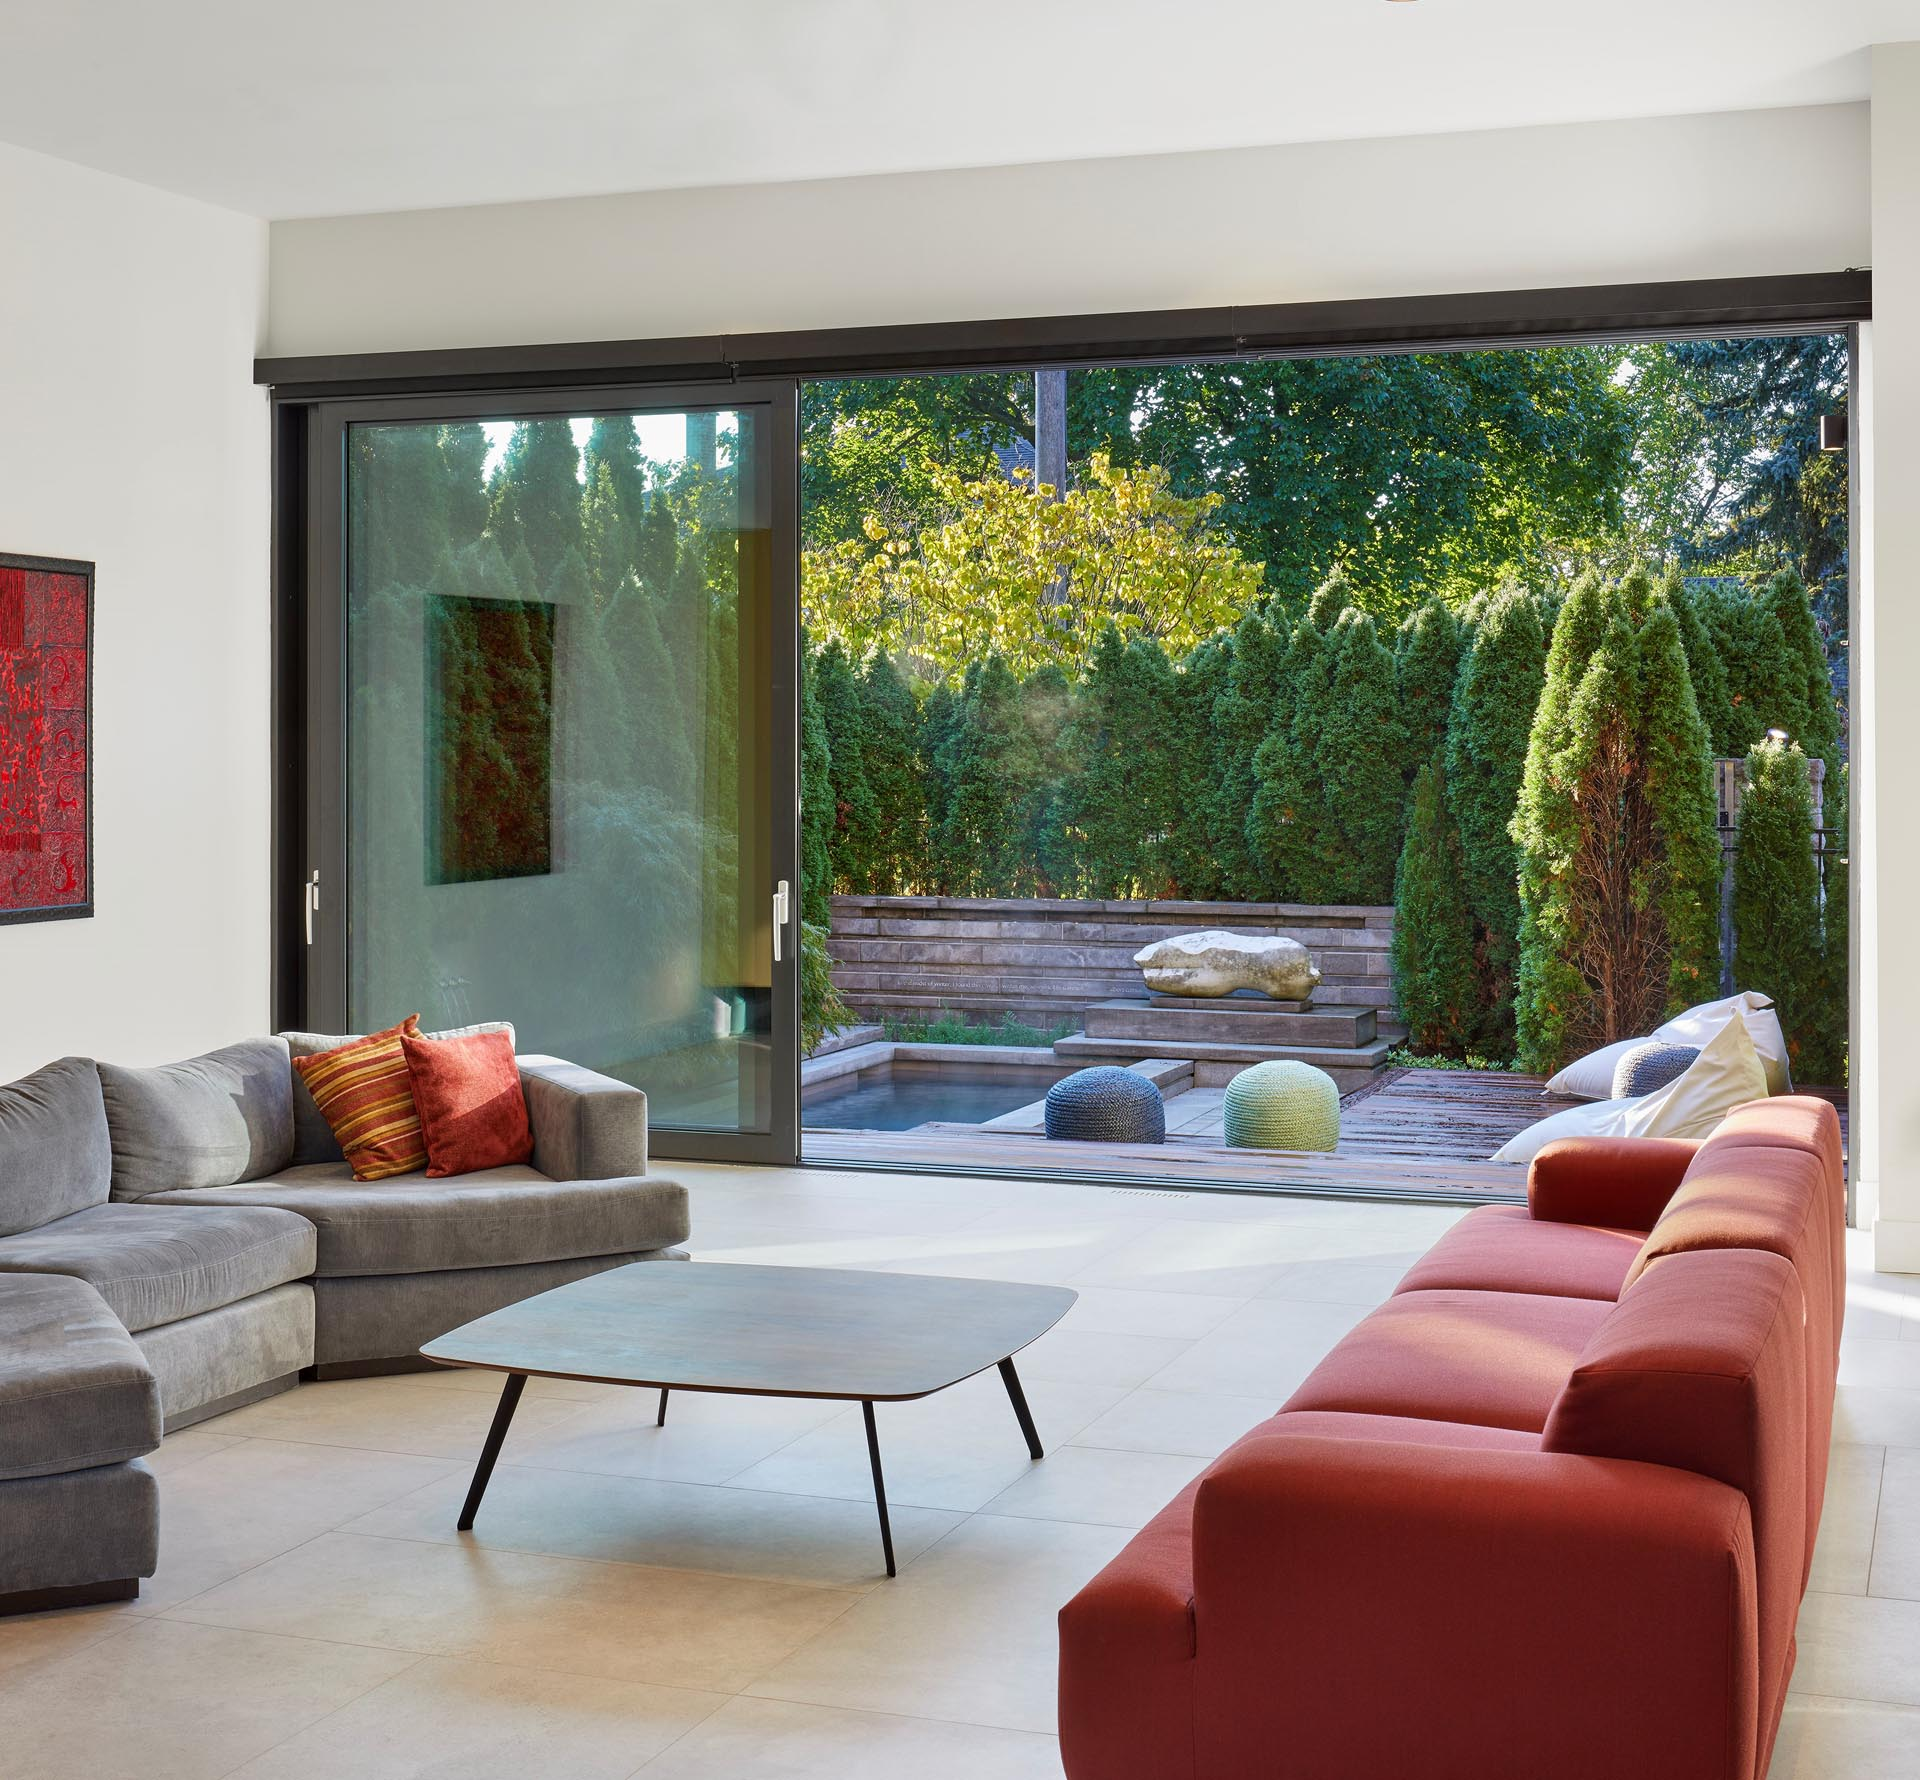 Large sliding glass doors connect the interior to the outdoor space and pool at the front of the home.